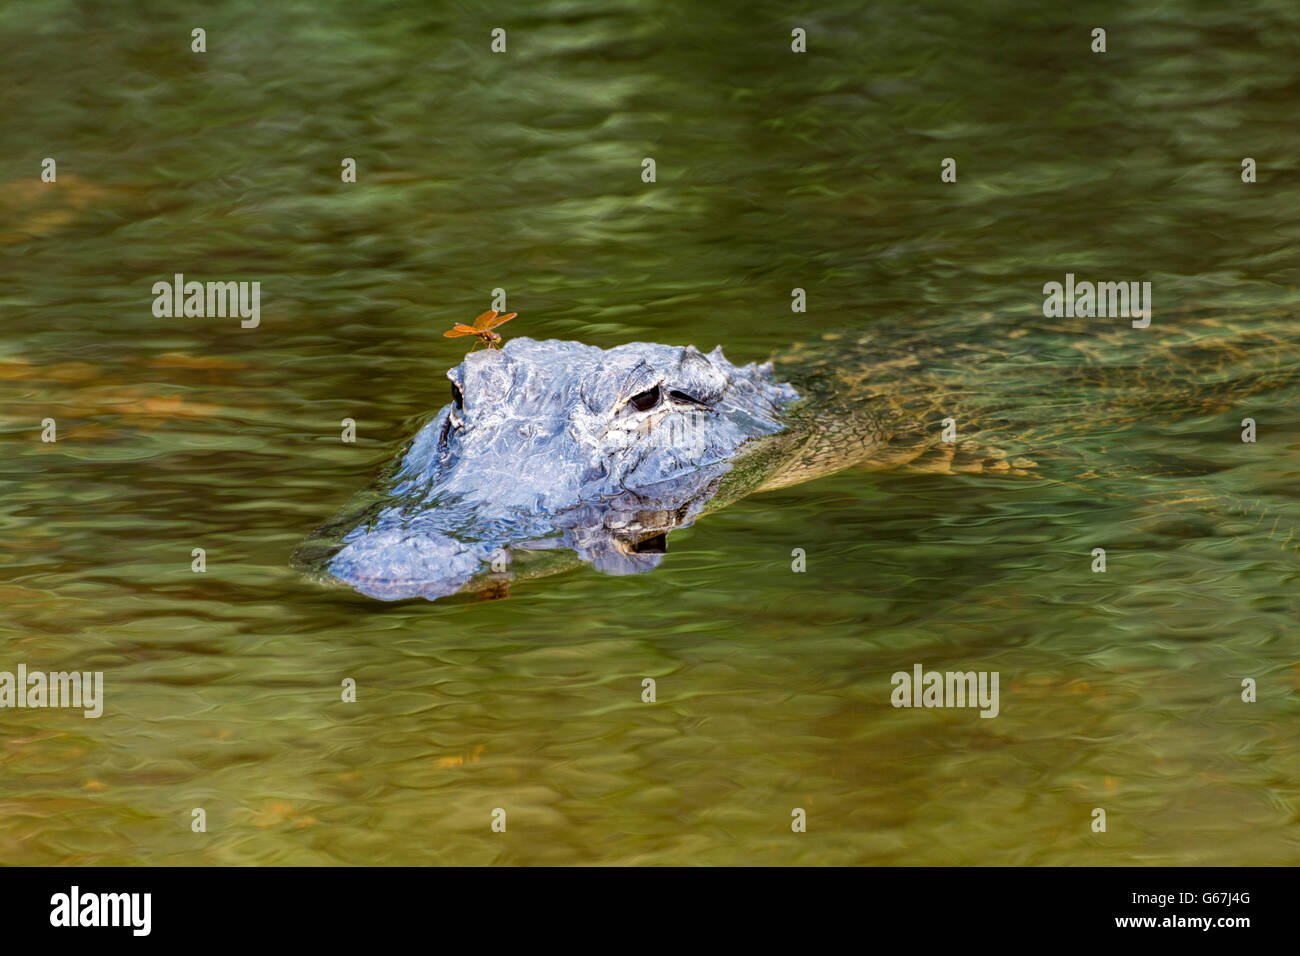 Florida, Big Cypress National Preserve, American Alligator (Alligator mississippiensis) viewed from Turner River - Stock Image